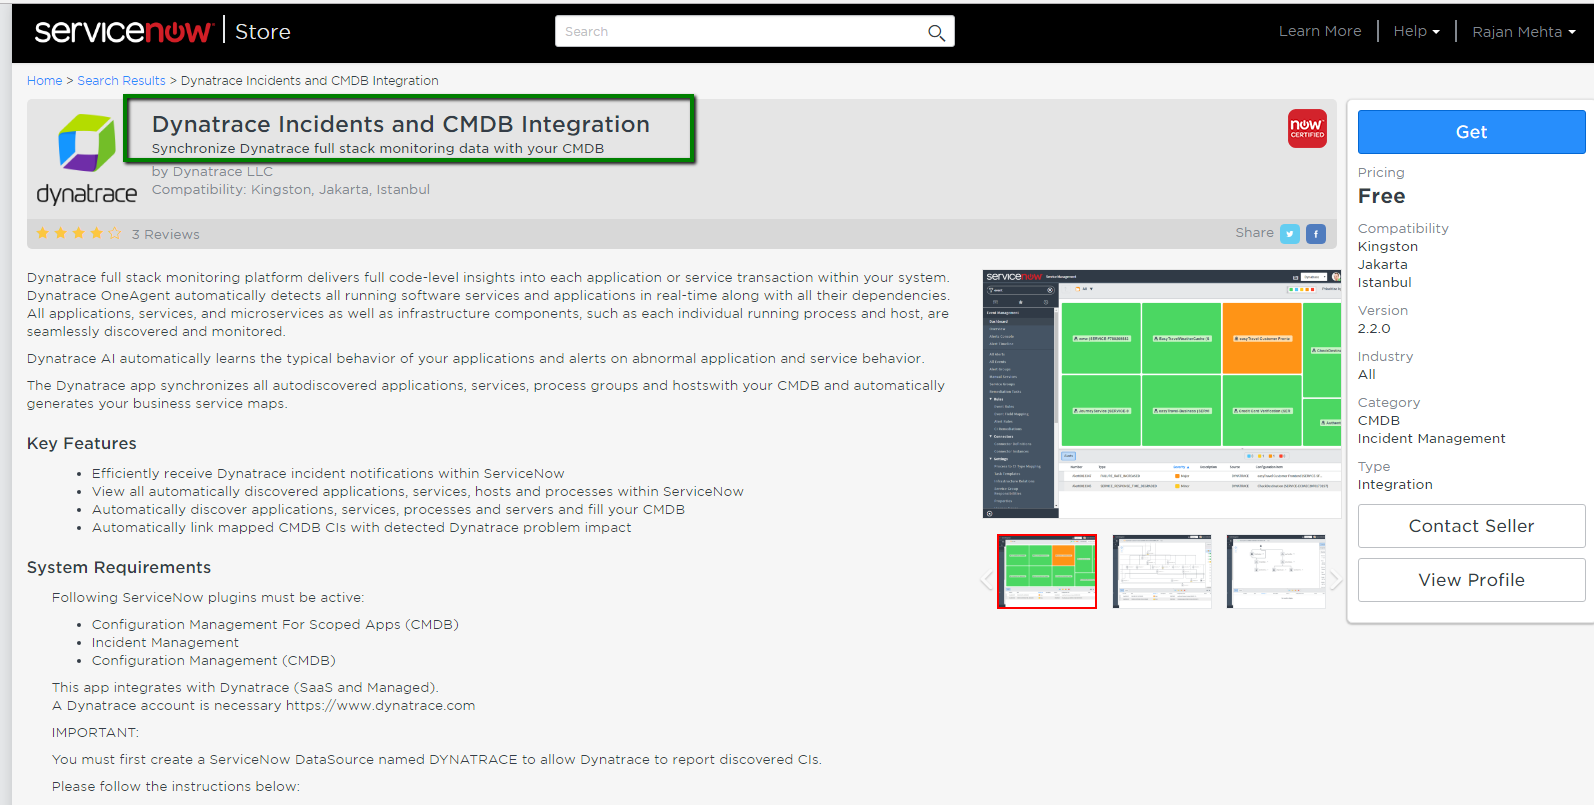 Dynatrace and SNOW integration - Service Management - ServiceNow